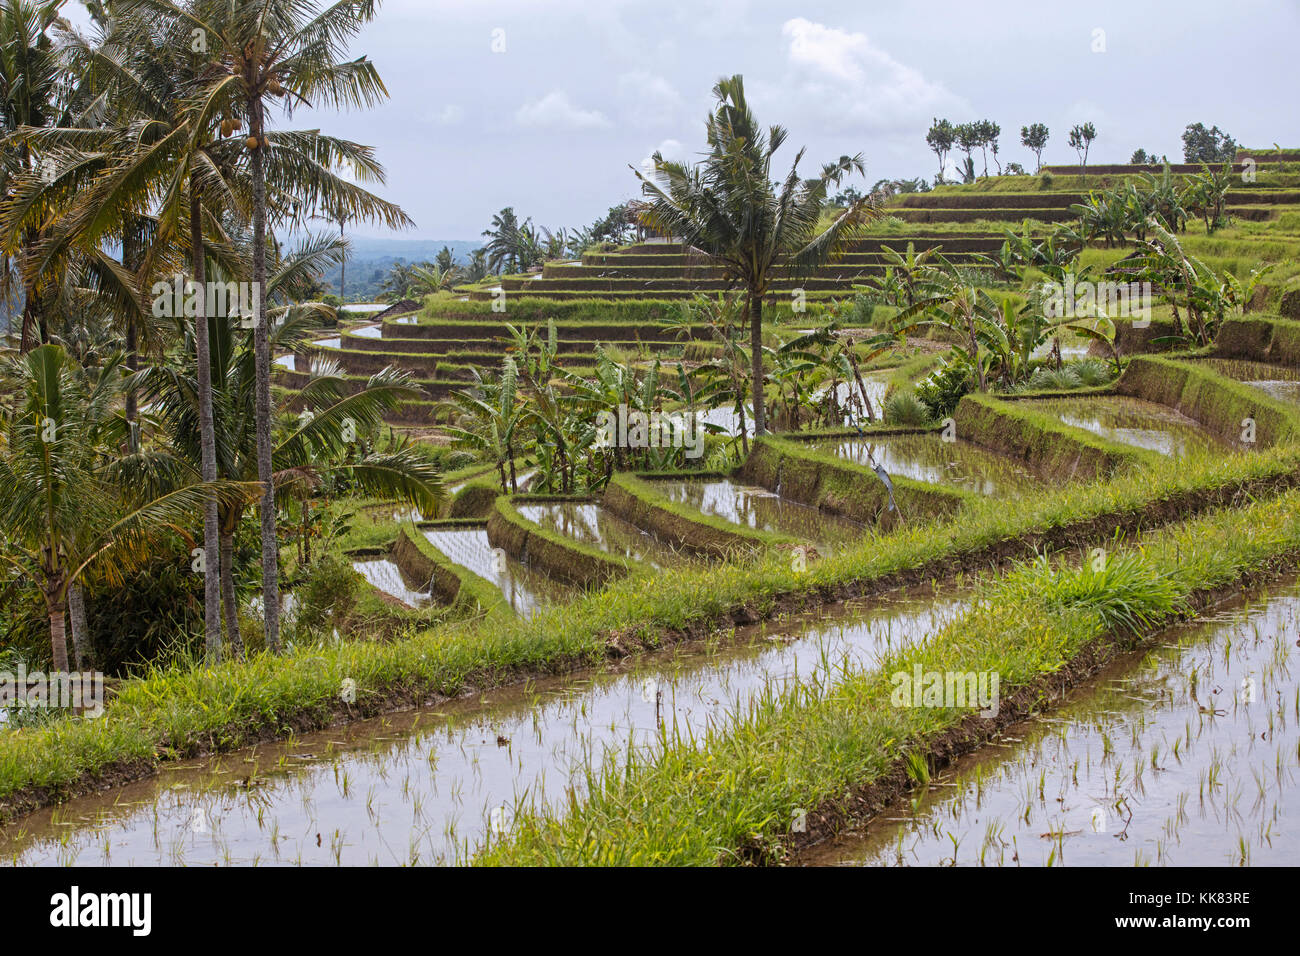 Jatiluwih terraced paddy fields, rice terraces in the highlands of West Bali, Indonesia - Stock Image